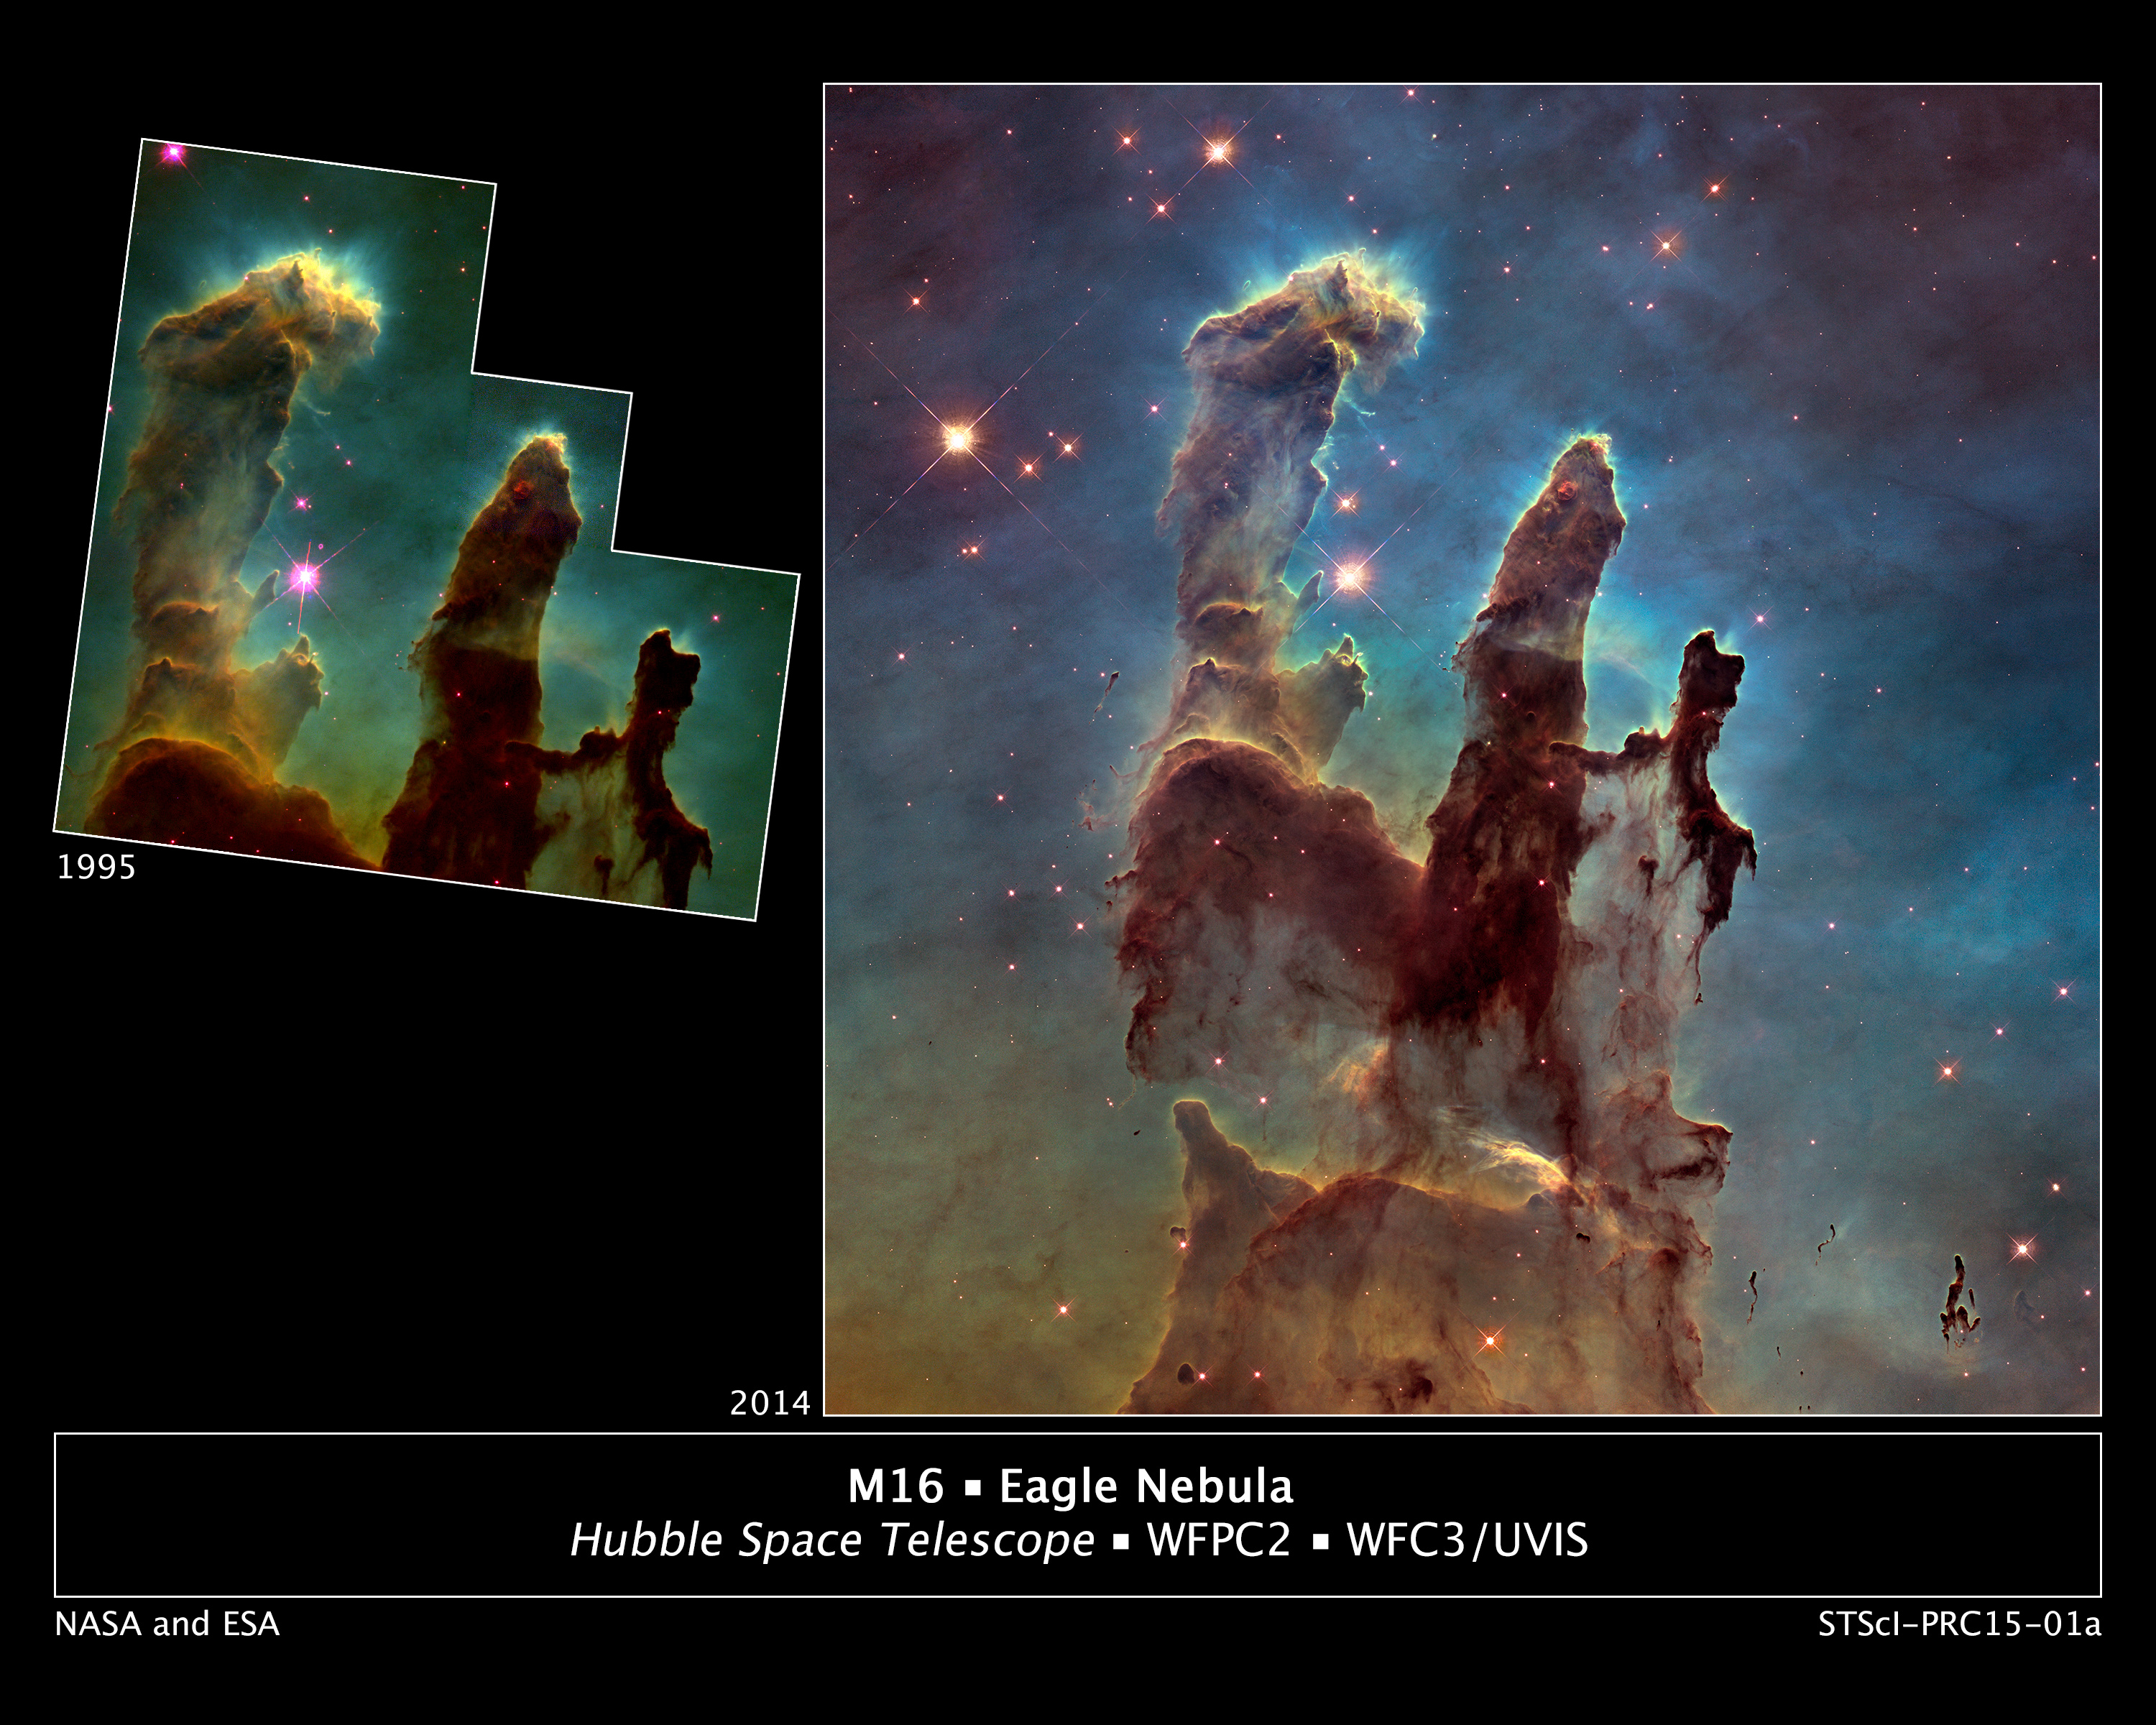 """Astronomers using NASA's Hubble Space Telescope have assembled a bigger and sharper photograph of the iconic Eagle Nebula's """"Pillars of Creation"""" (right); the original 1995 Hubble image is shown at left. Credits: NASA/ESA/Hubble Heritage Team (STScI/AURA)/J. Hester, P. Scowen (Arizona State U.)"""